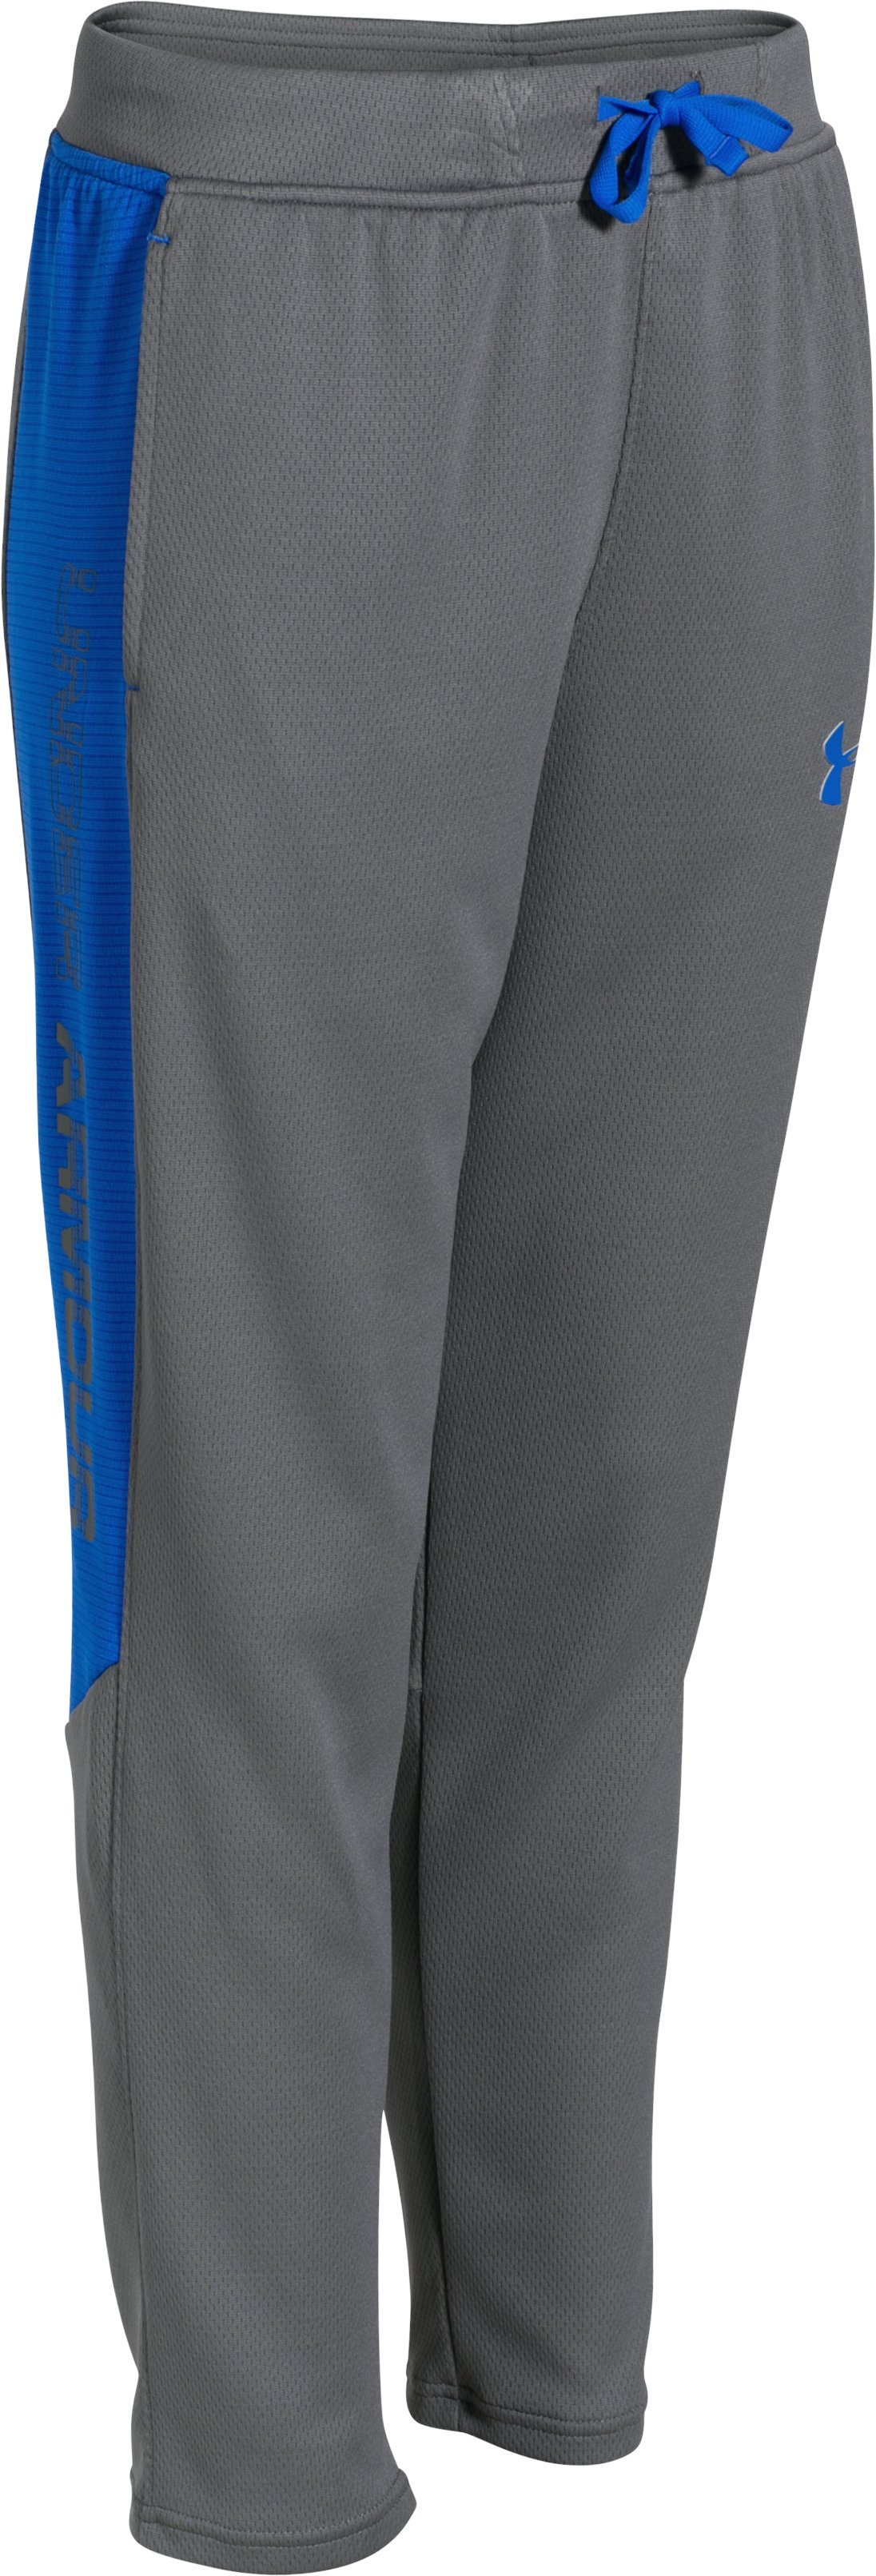 Boys' UA Select Warm-Up Pants, Graphite